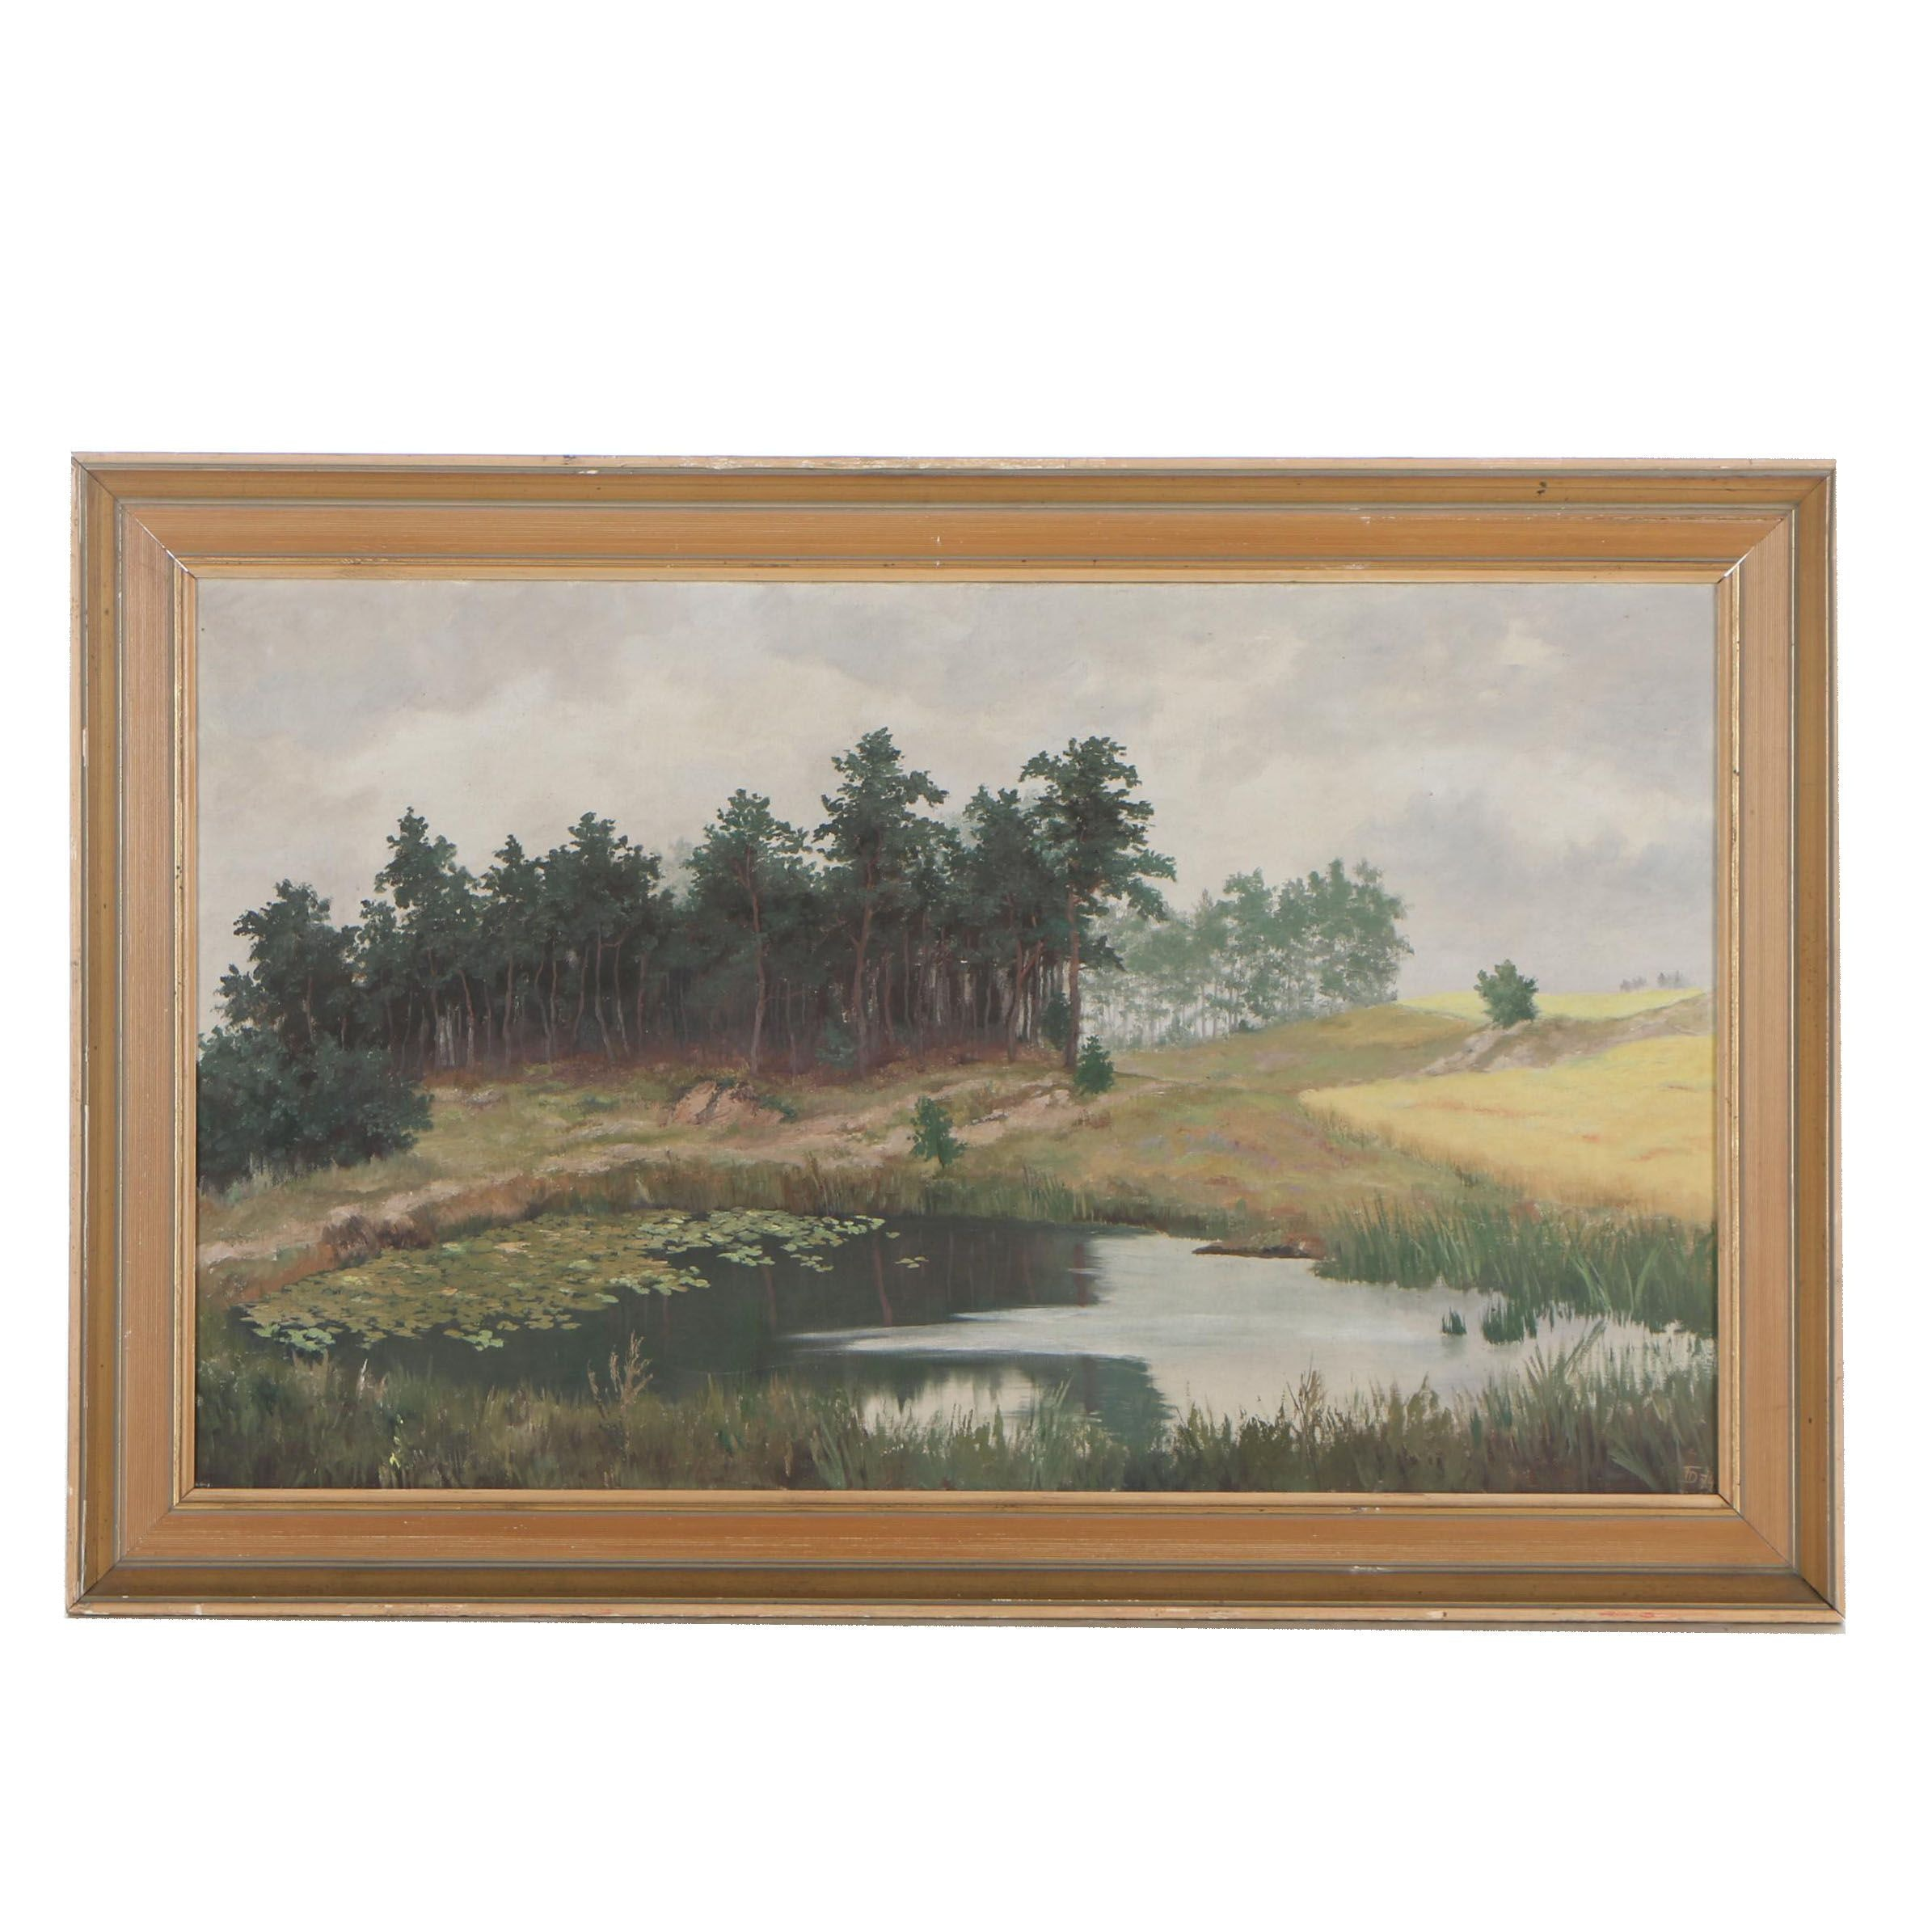 F.D. 1977 Oil Painting of an Impressionistic Landscape